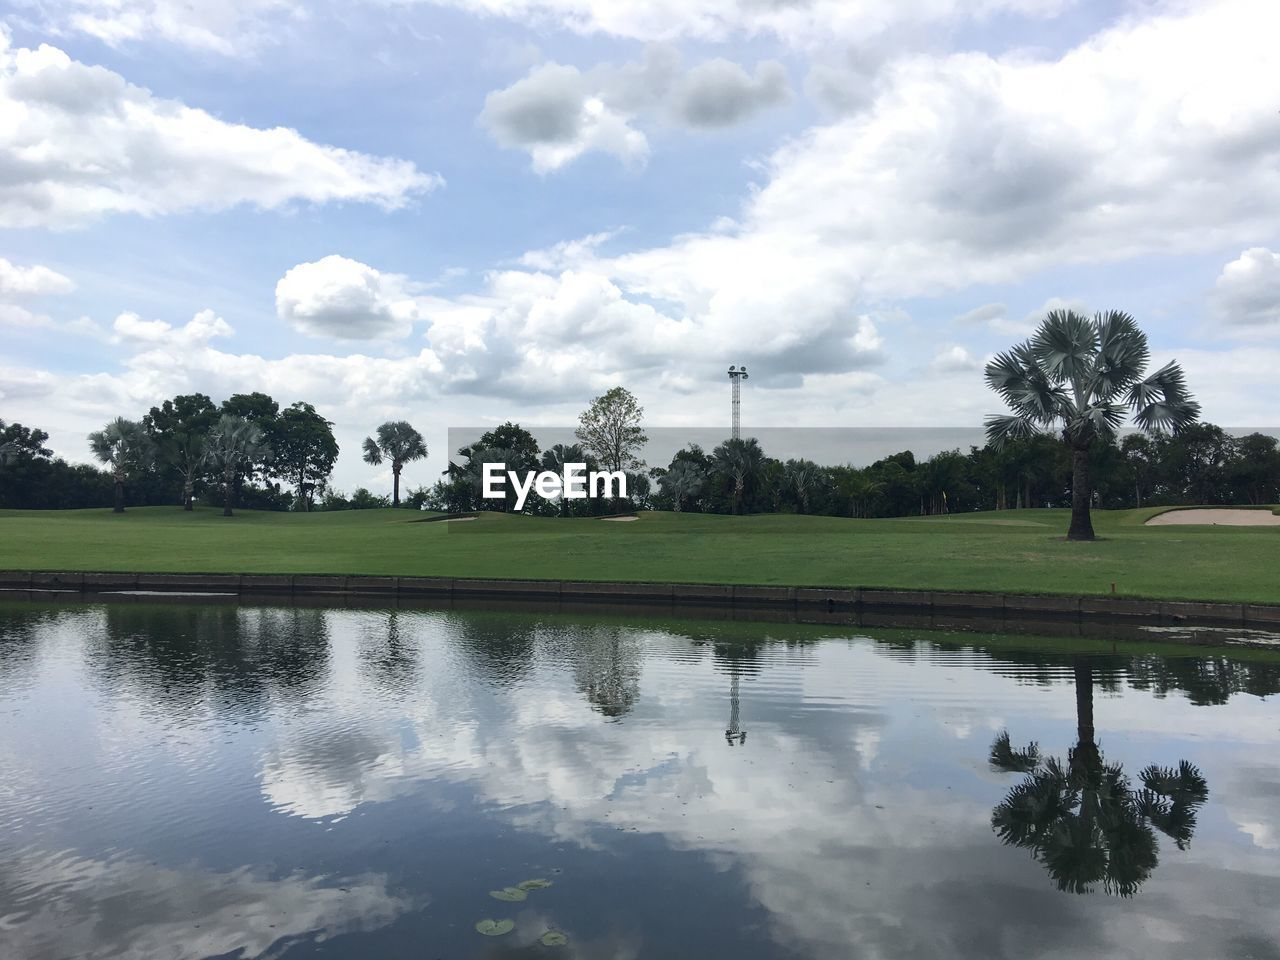 reflection, tree, cloud - sky, sky, water, nature, beauty in nature, tranquility, tranquil scene, lake, day, no people, scenics, outdoors, grass, golf course, golf, green - golf course